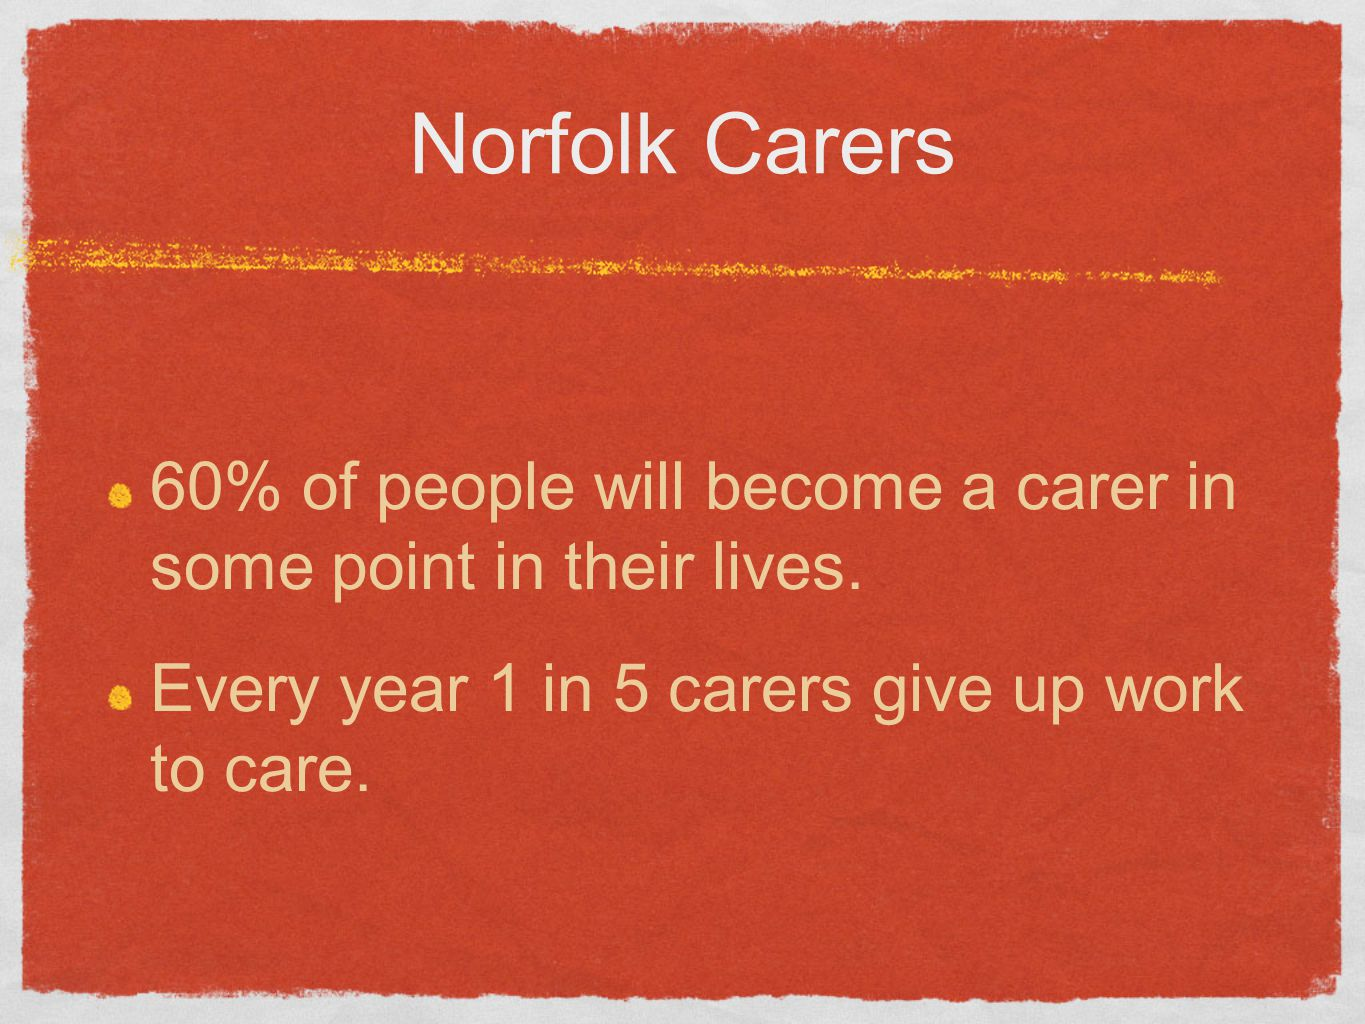 Norfolk Carers 60% of people will become a carer in some point in their lives. Every year 1 in 5 carers give up work to care.